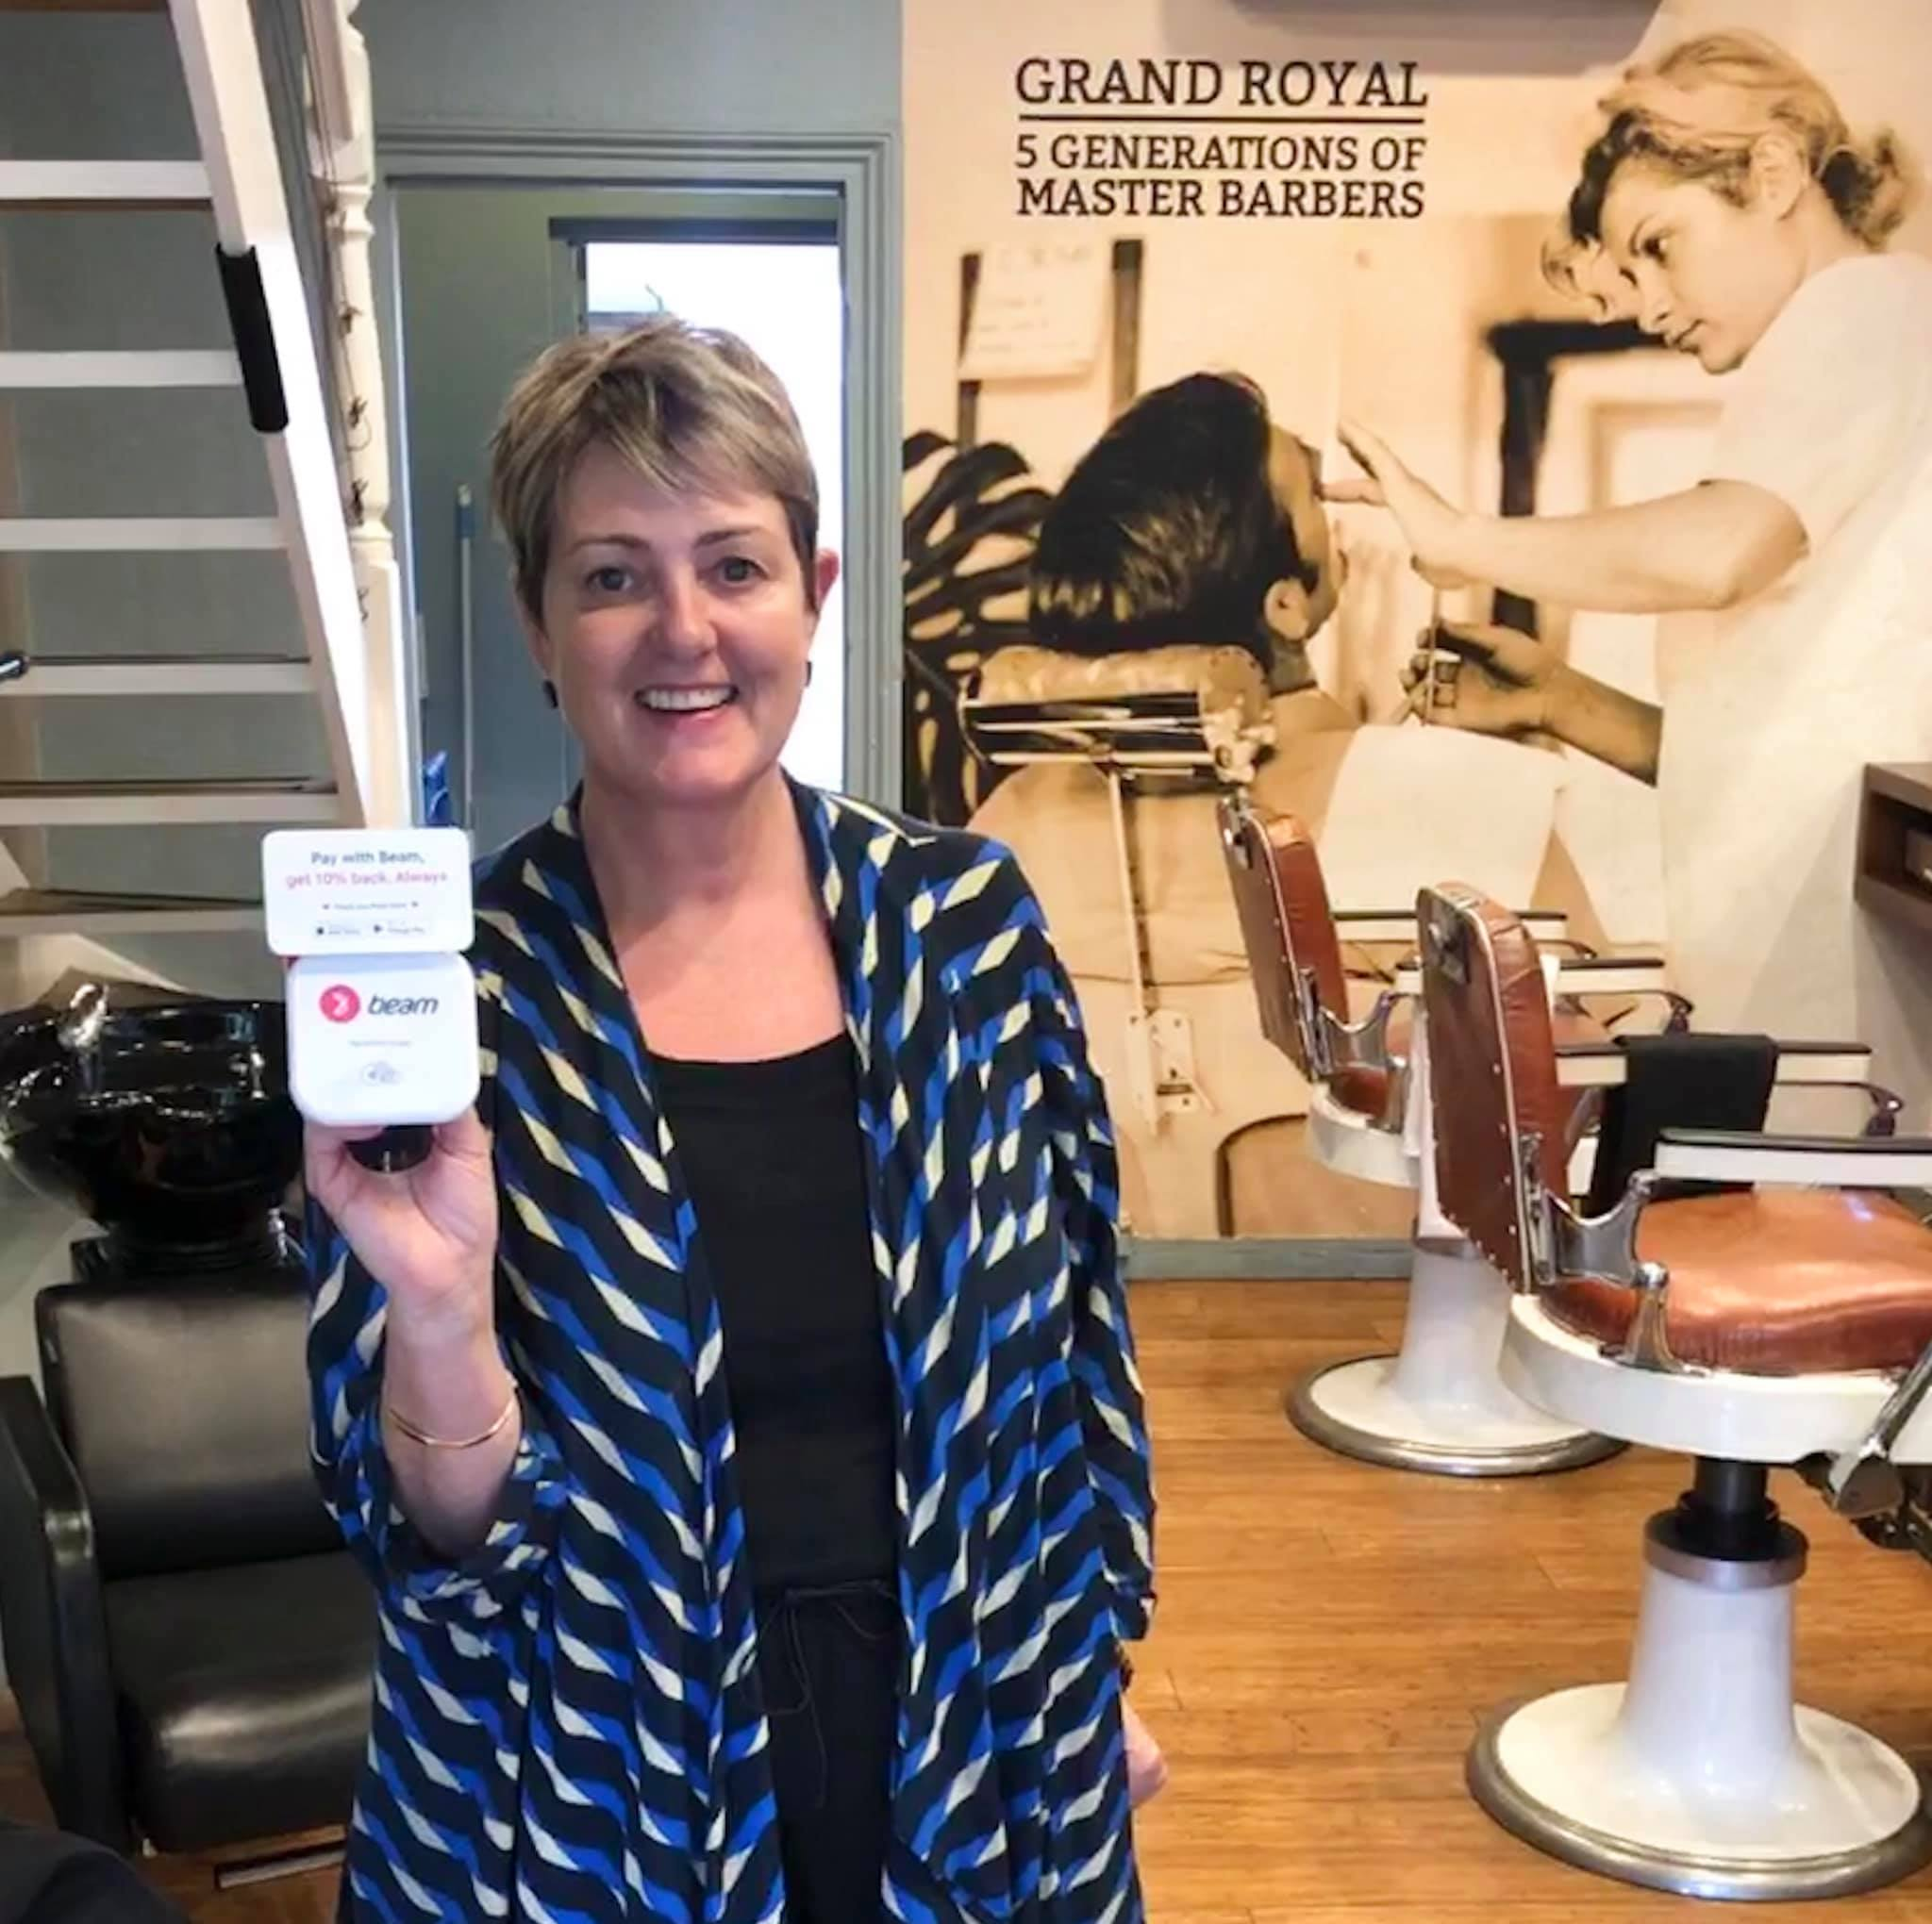 Maria Dillon excited to accept Beam at her Darlinghurst barber shop.